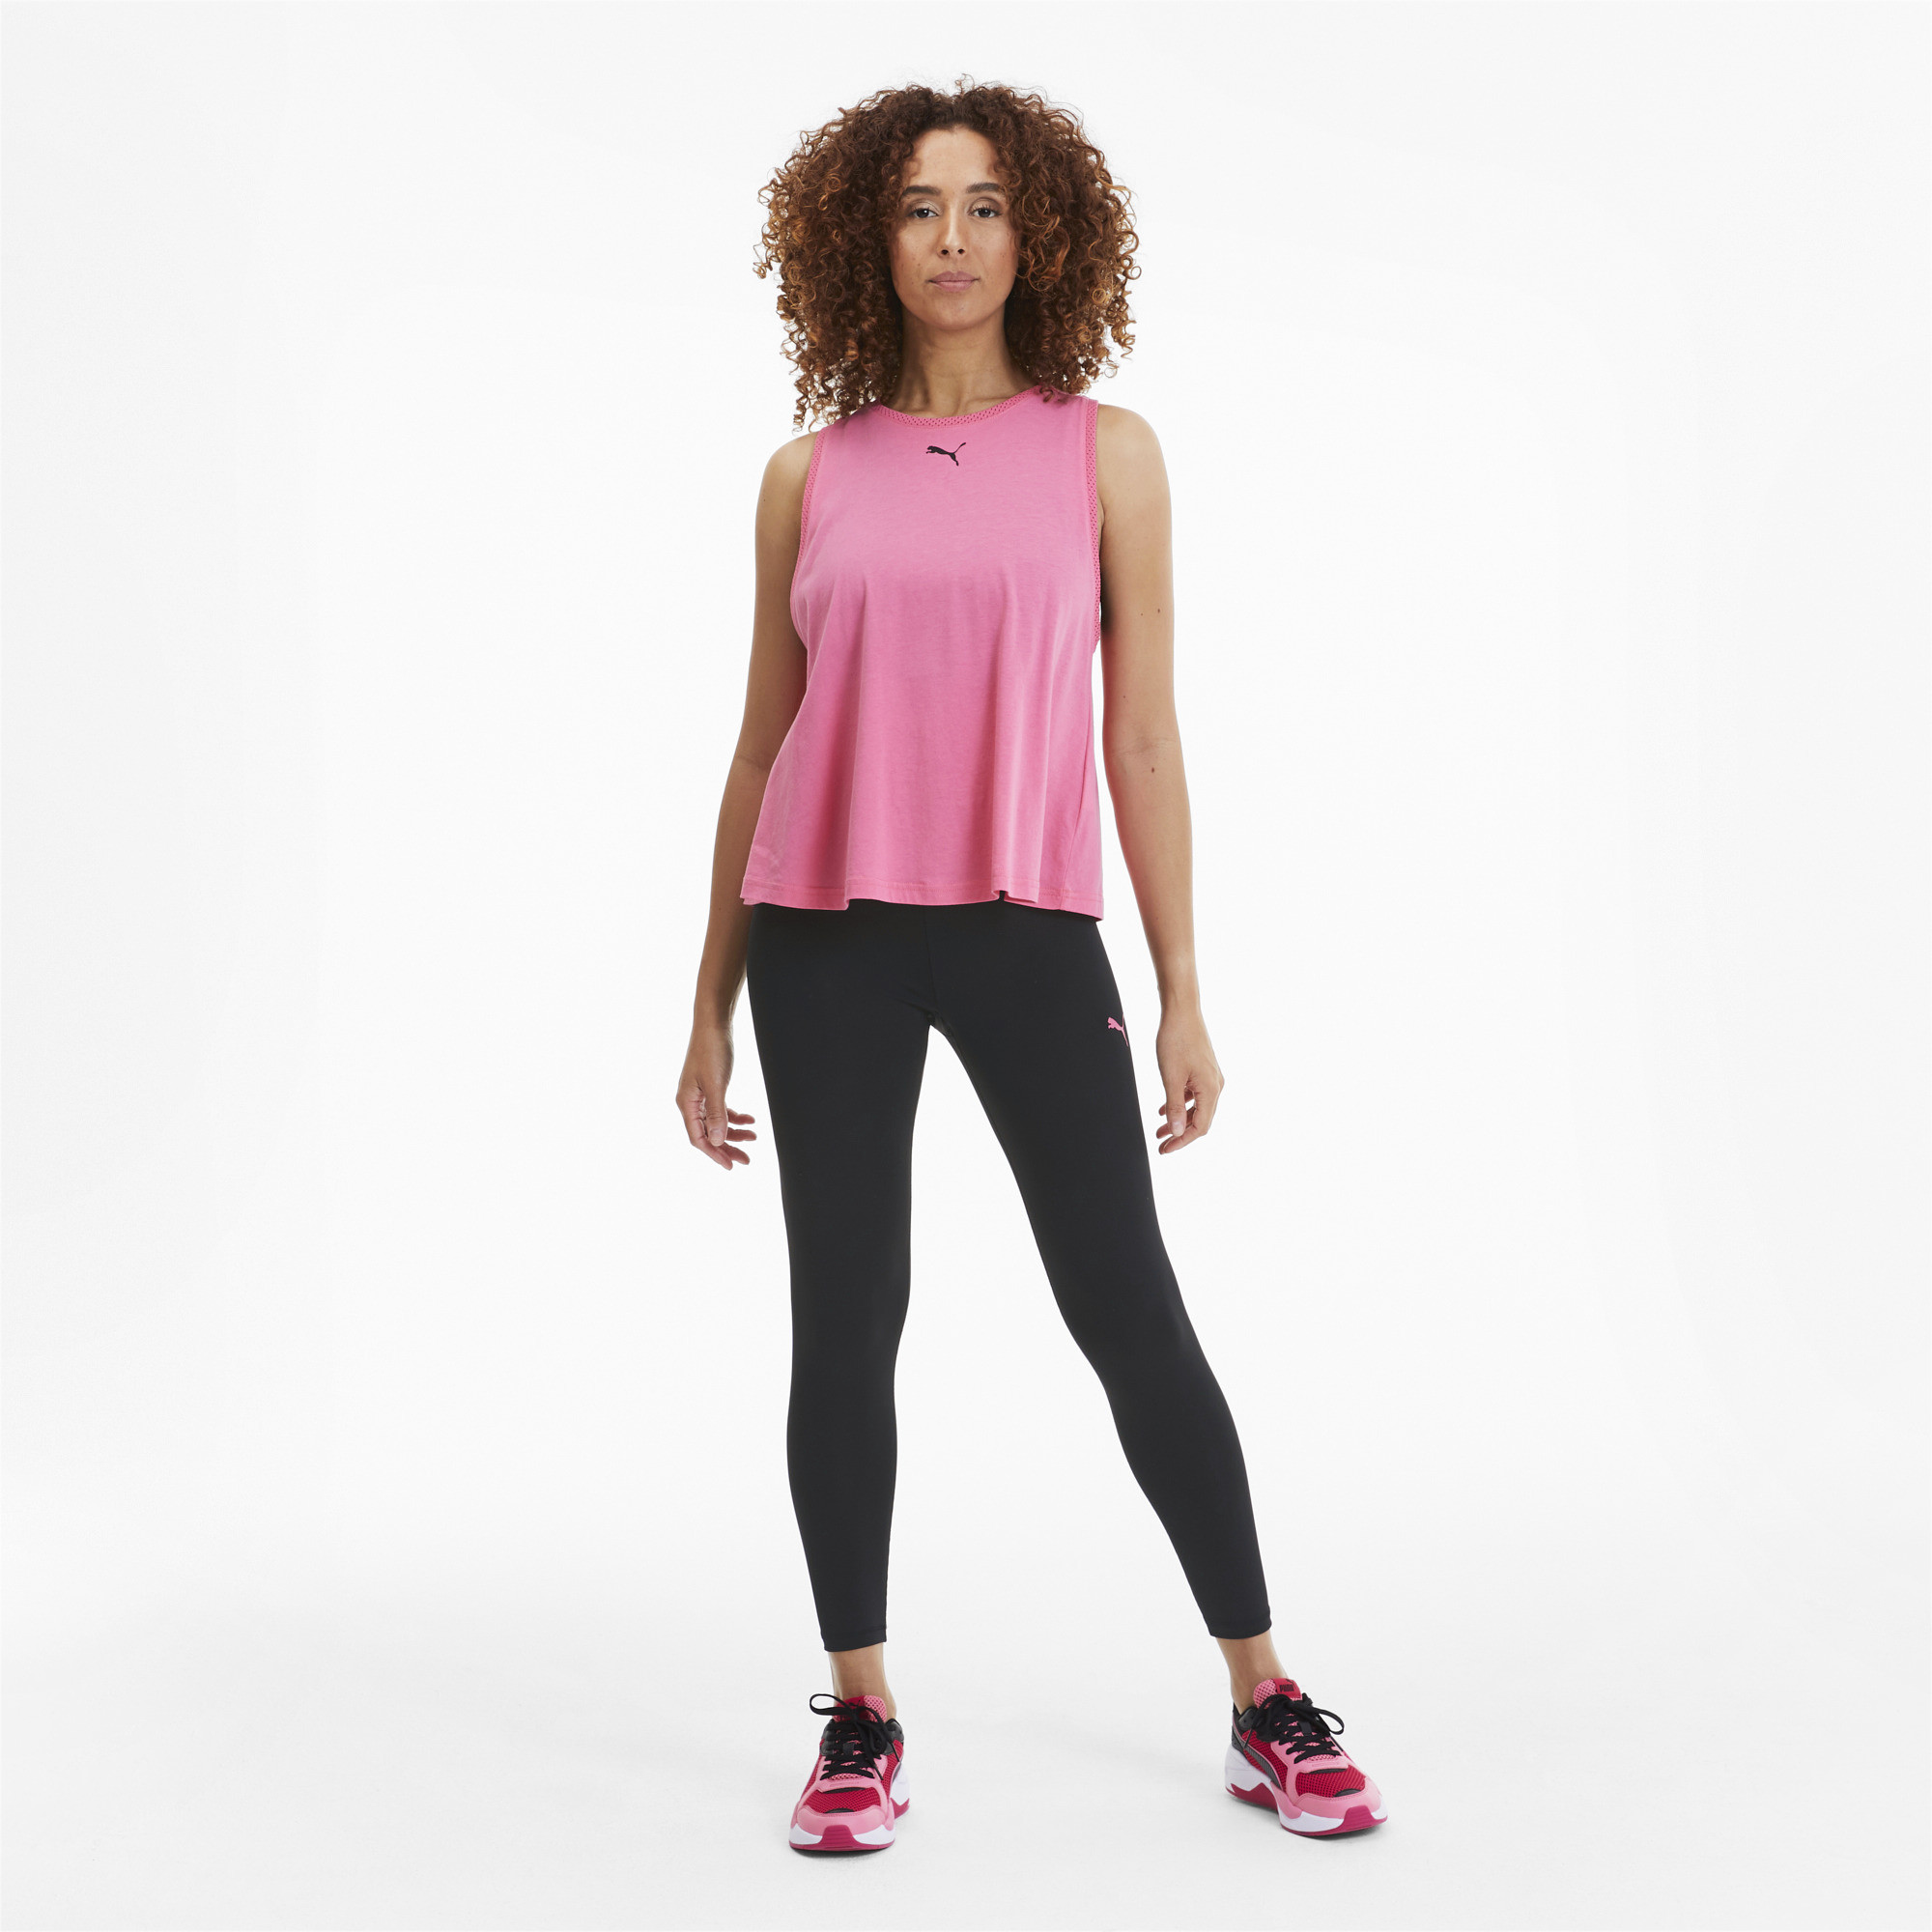 PUMA-Modern-Sports-Women-039-s-Band-Leggings-Women-Basics thumbnail 6